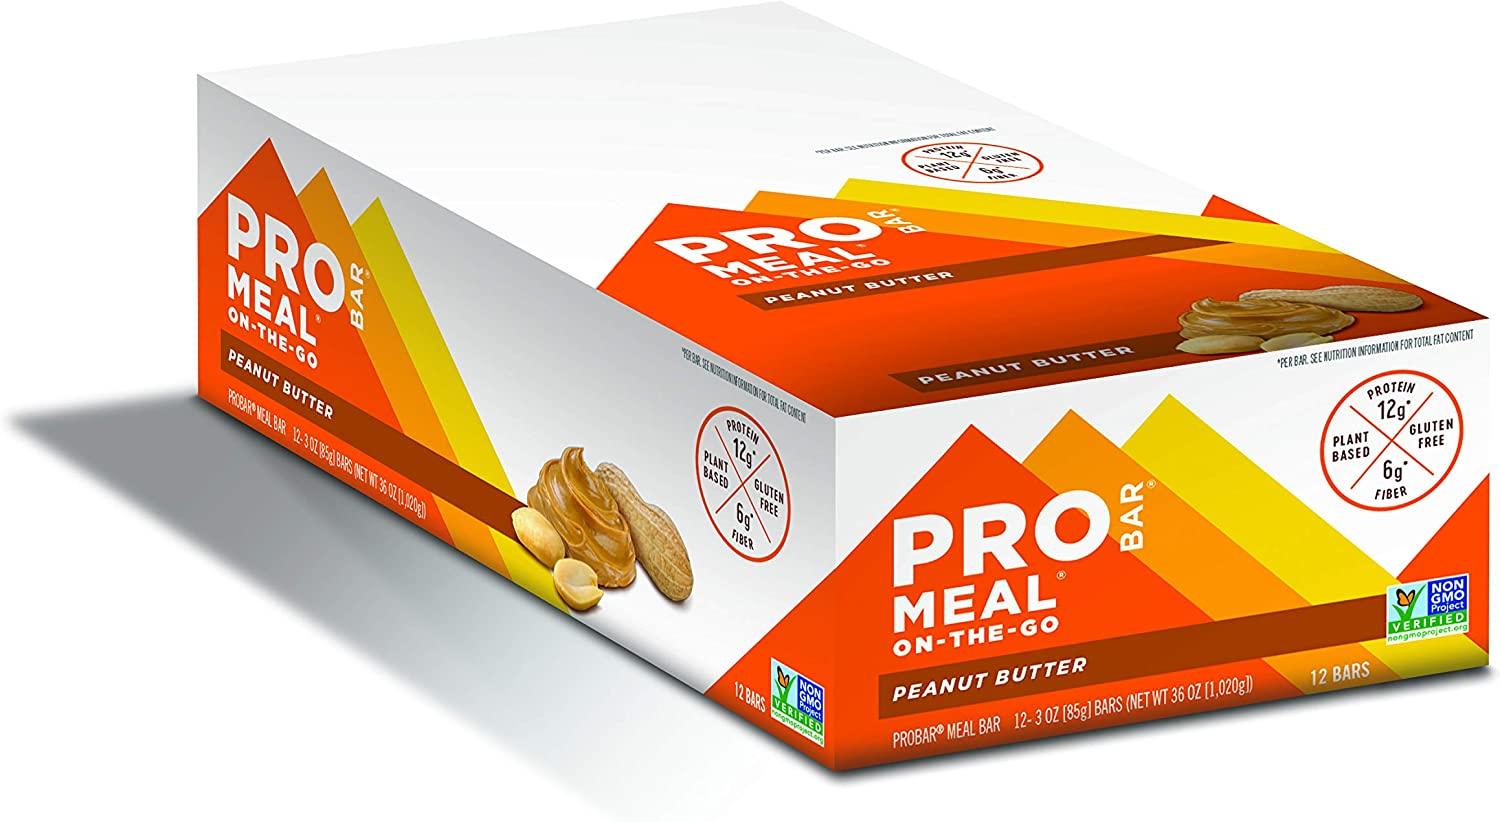 PROBAR - Meal Bar, Peanut Butter, Non-GMO, Gluten-Free, Certified Organic, Healthy, Plant-Based Whole Food Ingredients, Natural Energy (12 Count)